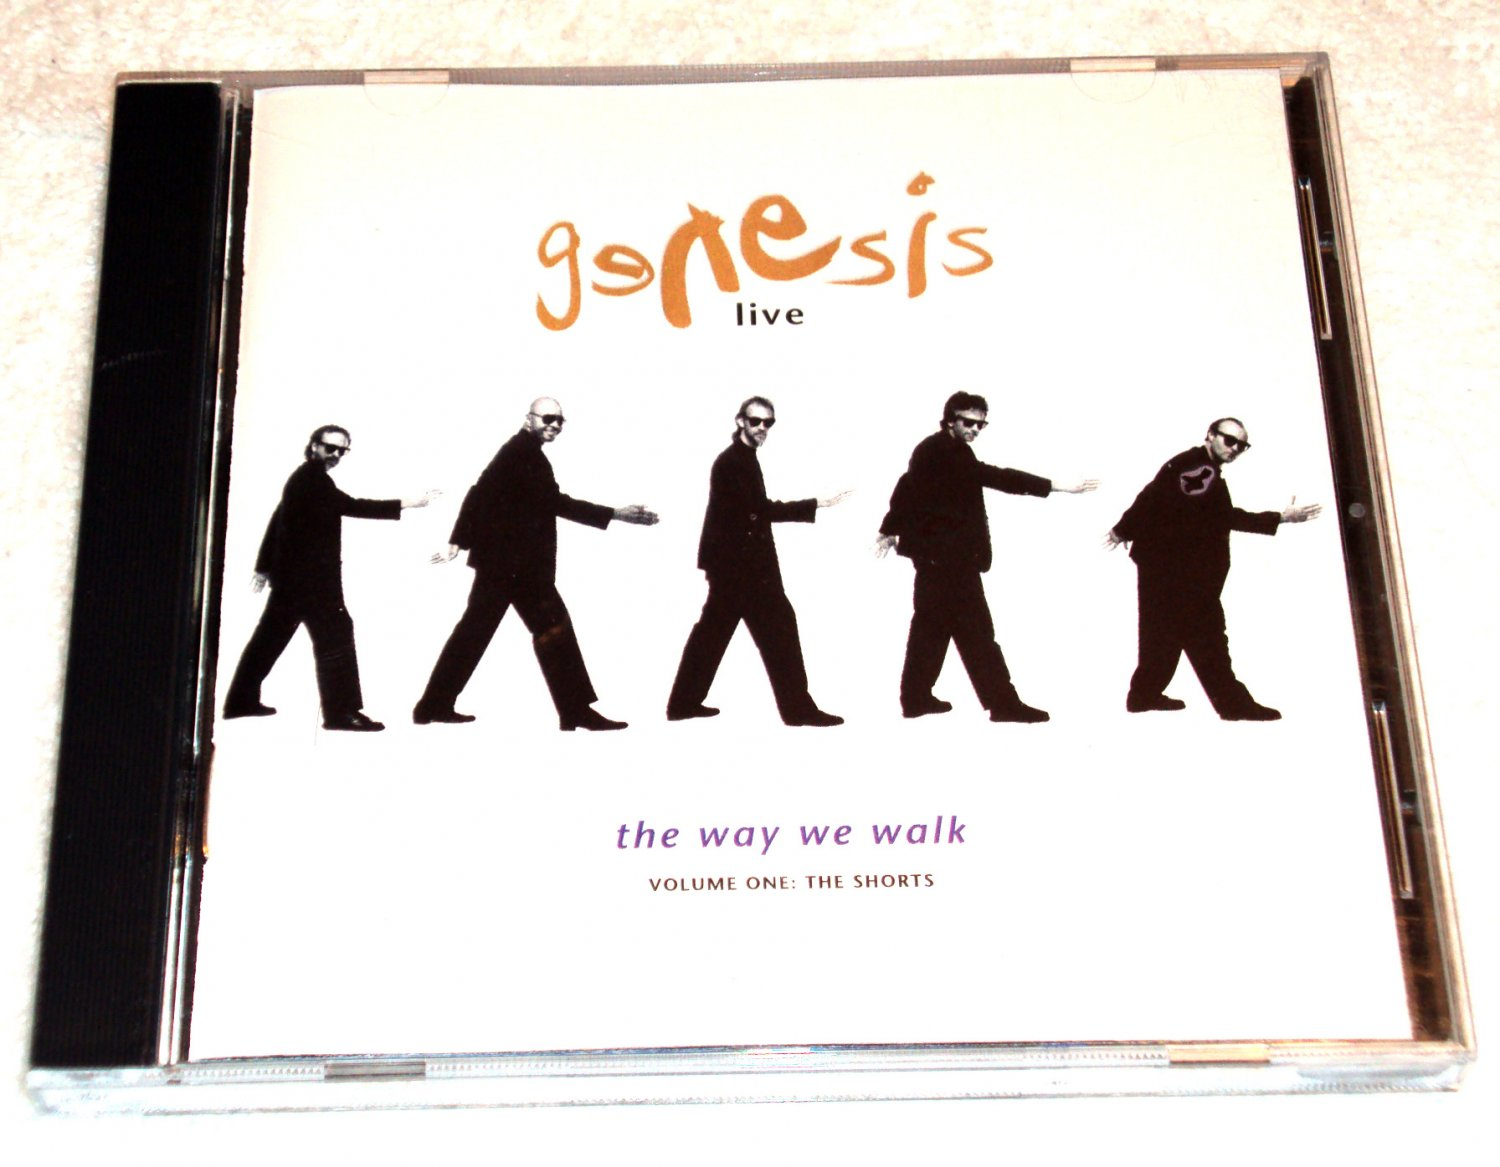 Genesis � Live: The Way We Walk, Volume 1 The Shorts (CD, 11 Tracks)